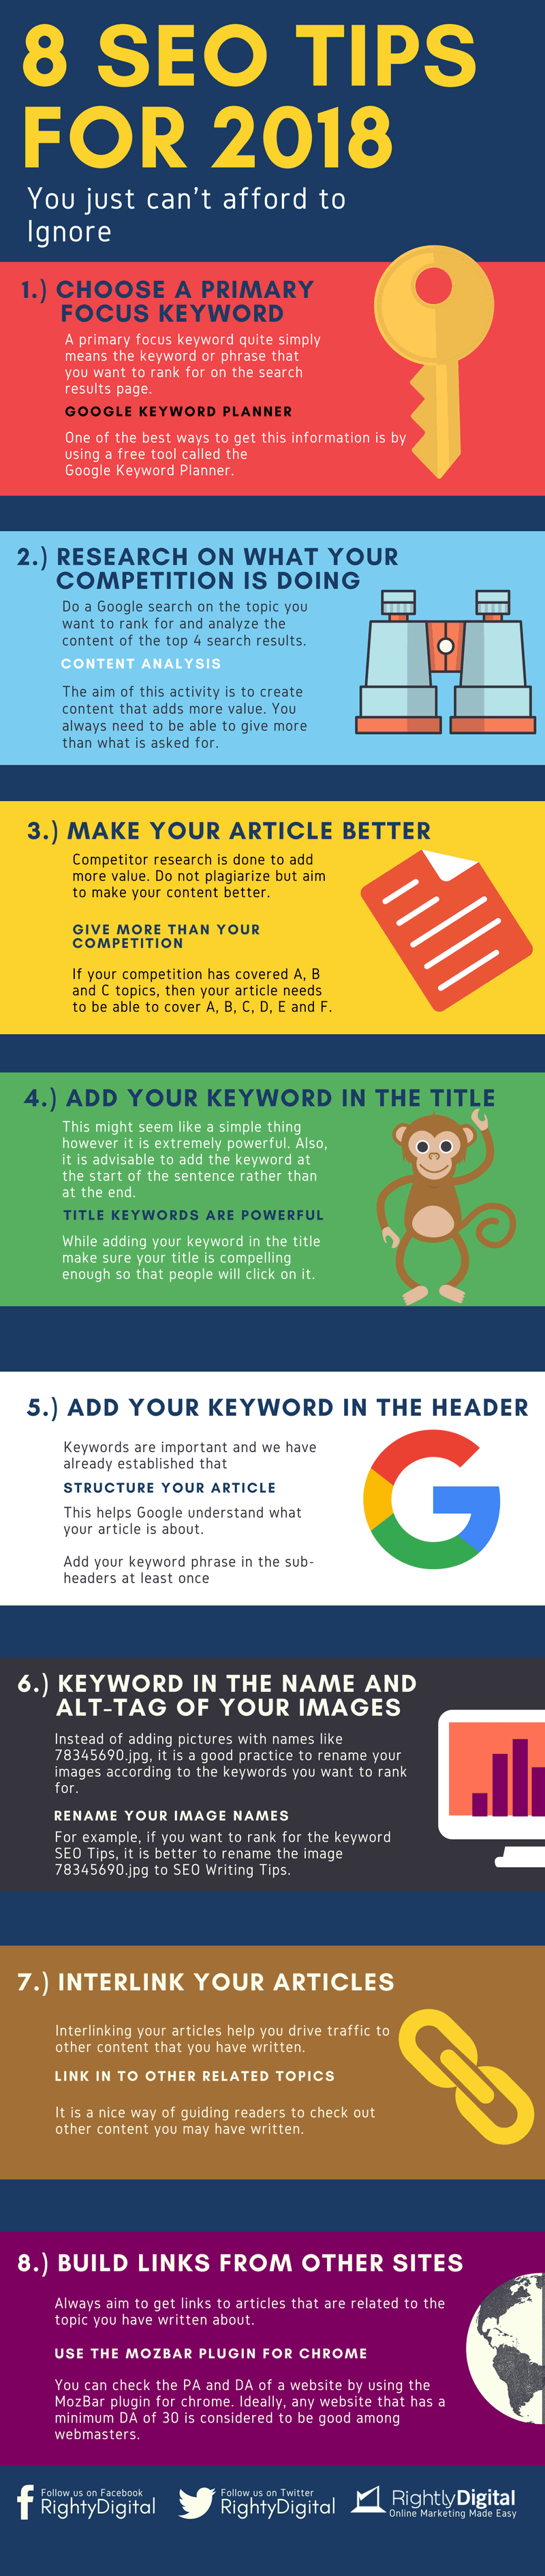 8-Seo-Tips-You-cannot-afford-to-ignore-in-2018-Infographic